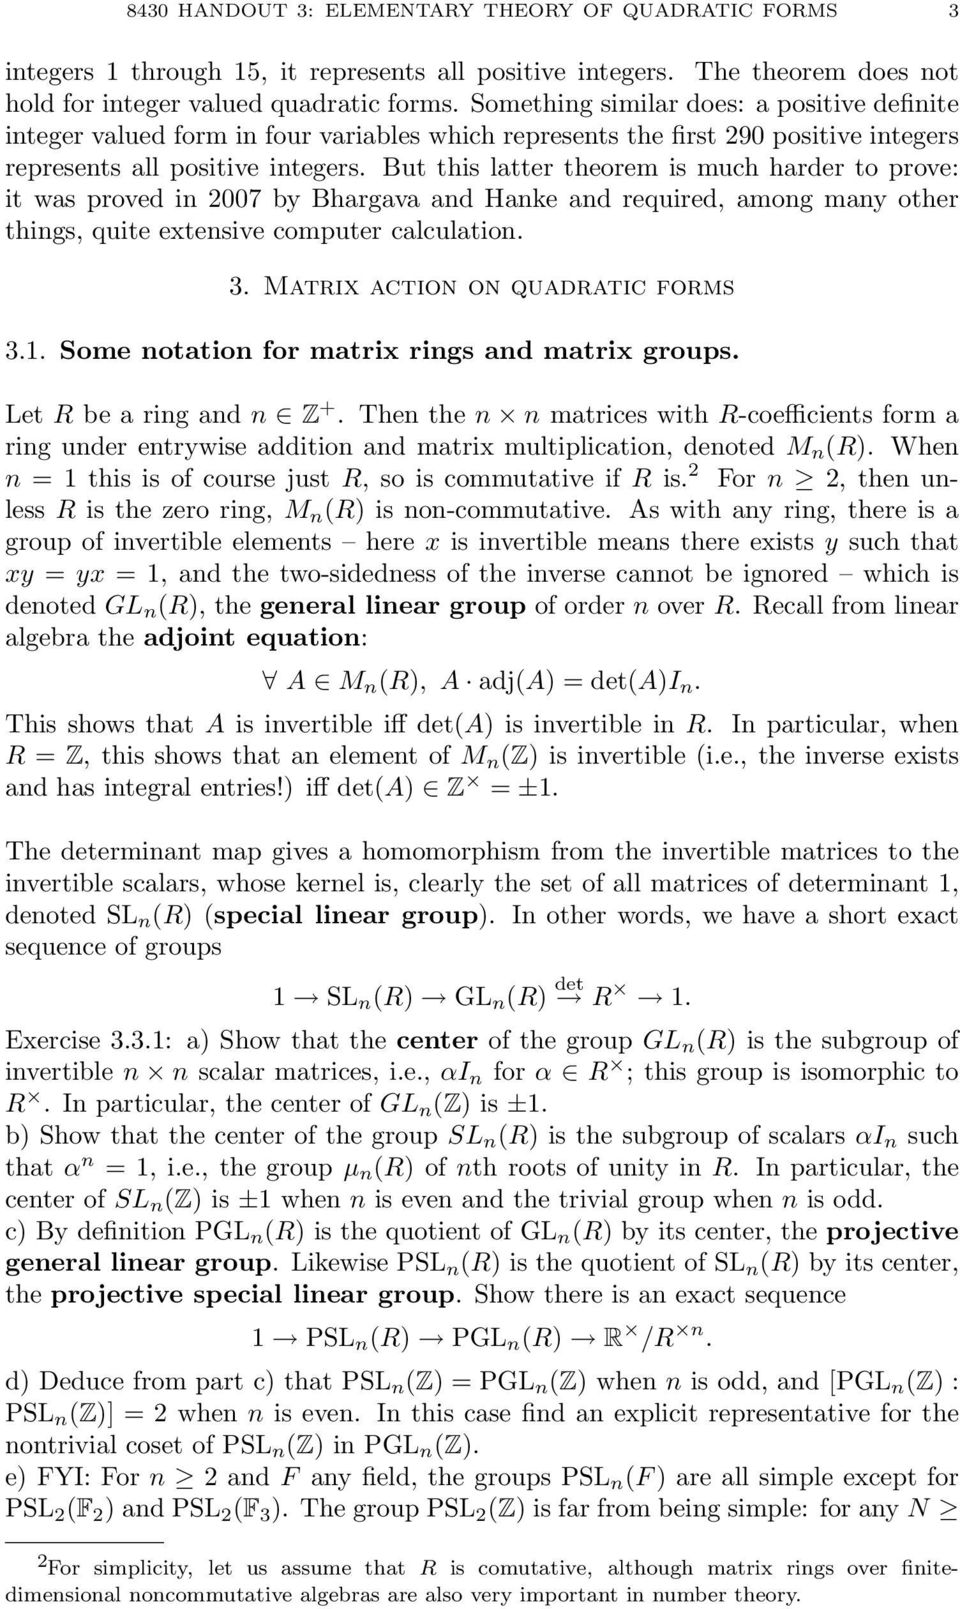 But this latter theorem is much harder to prove: it was proved in 2007 by Bhargava and Hanke and required, among many other things, quite extensive computer calculation. 3.